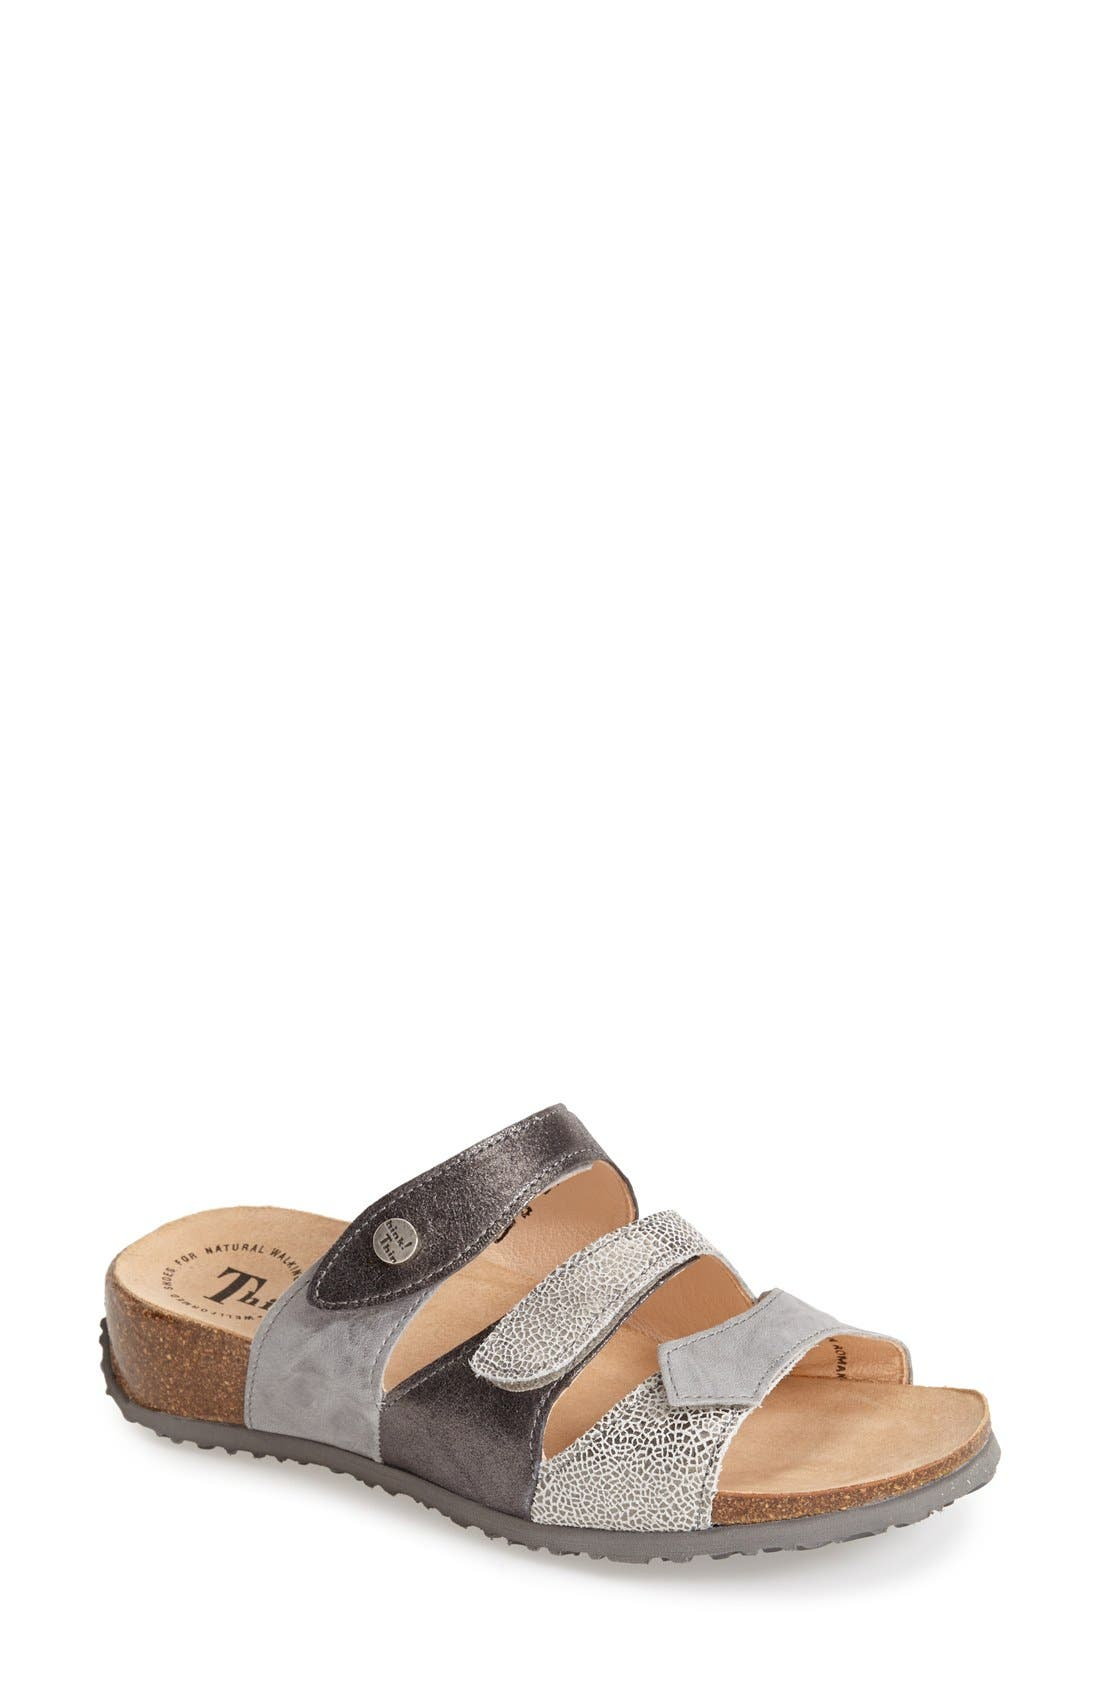 Alternate Image 1 Selected - Think! 'Mizzi' Sandal (Online Only)